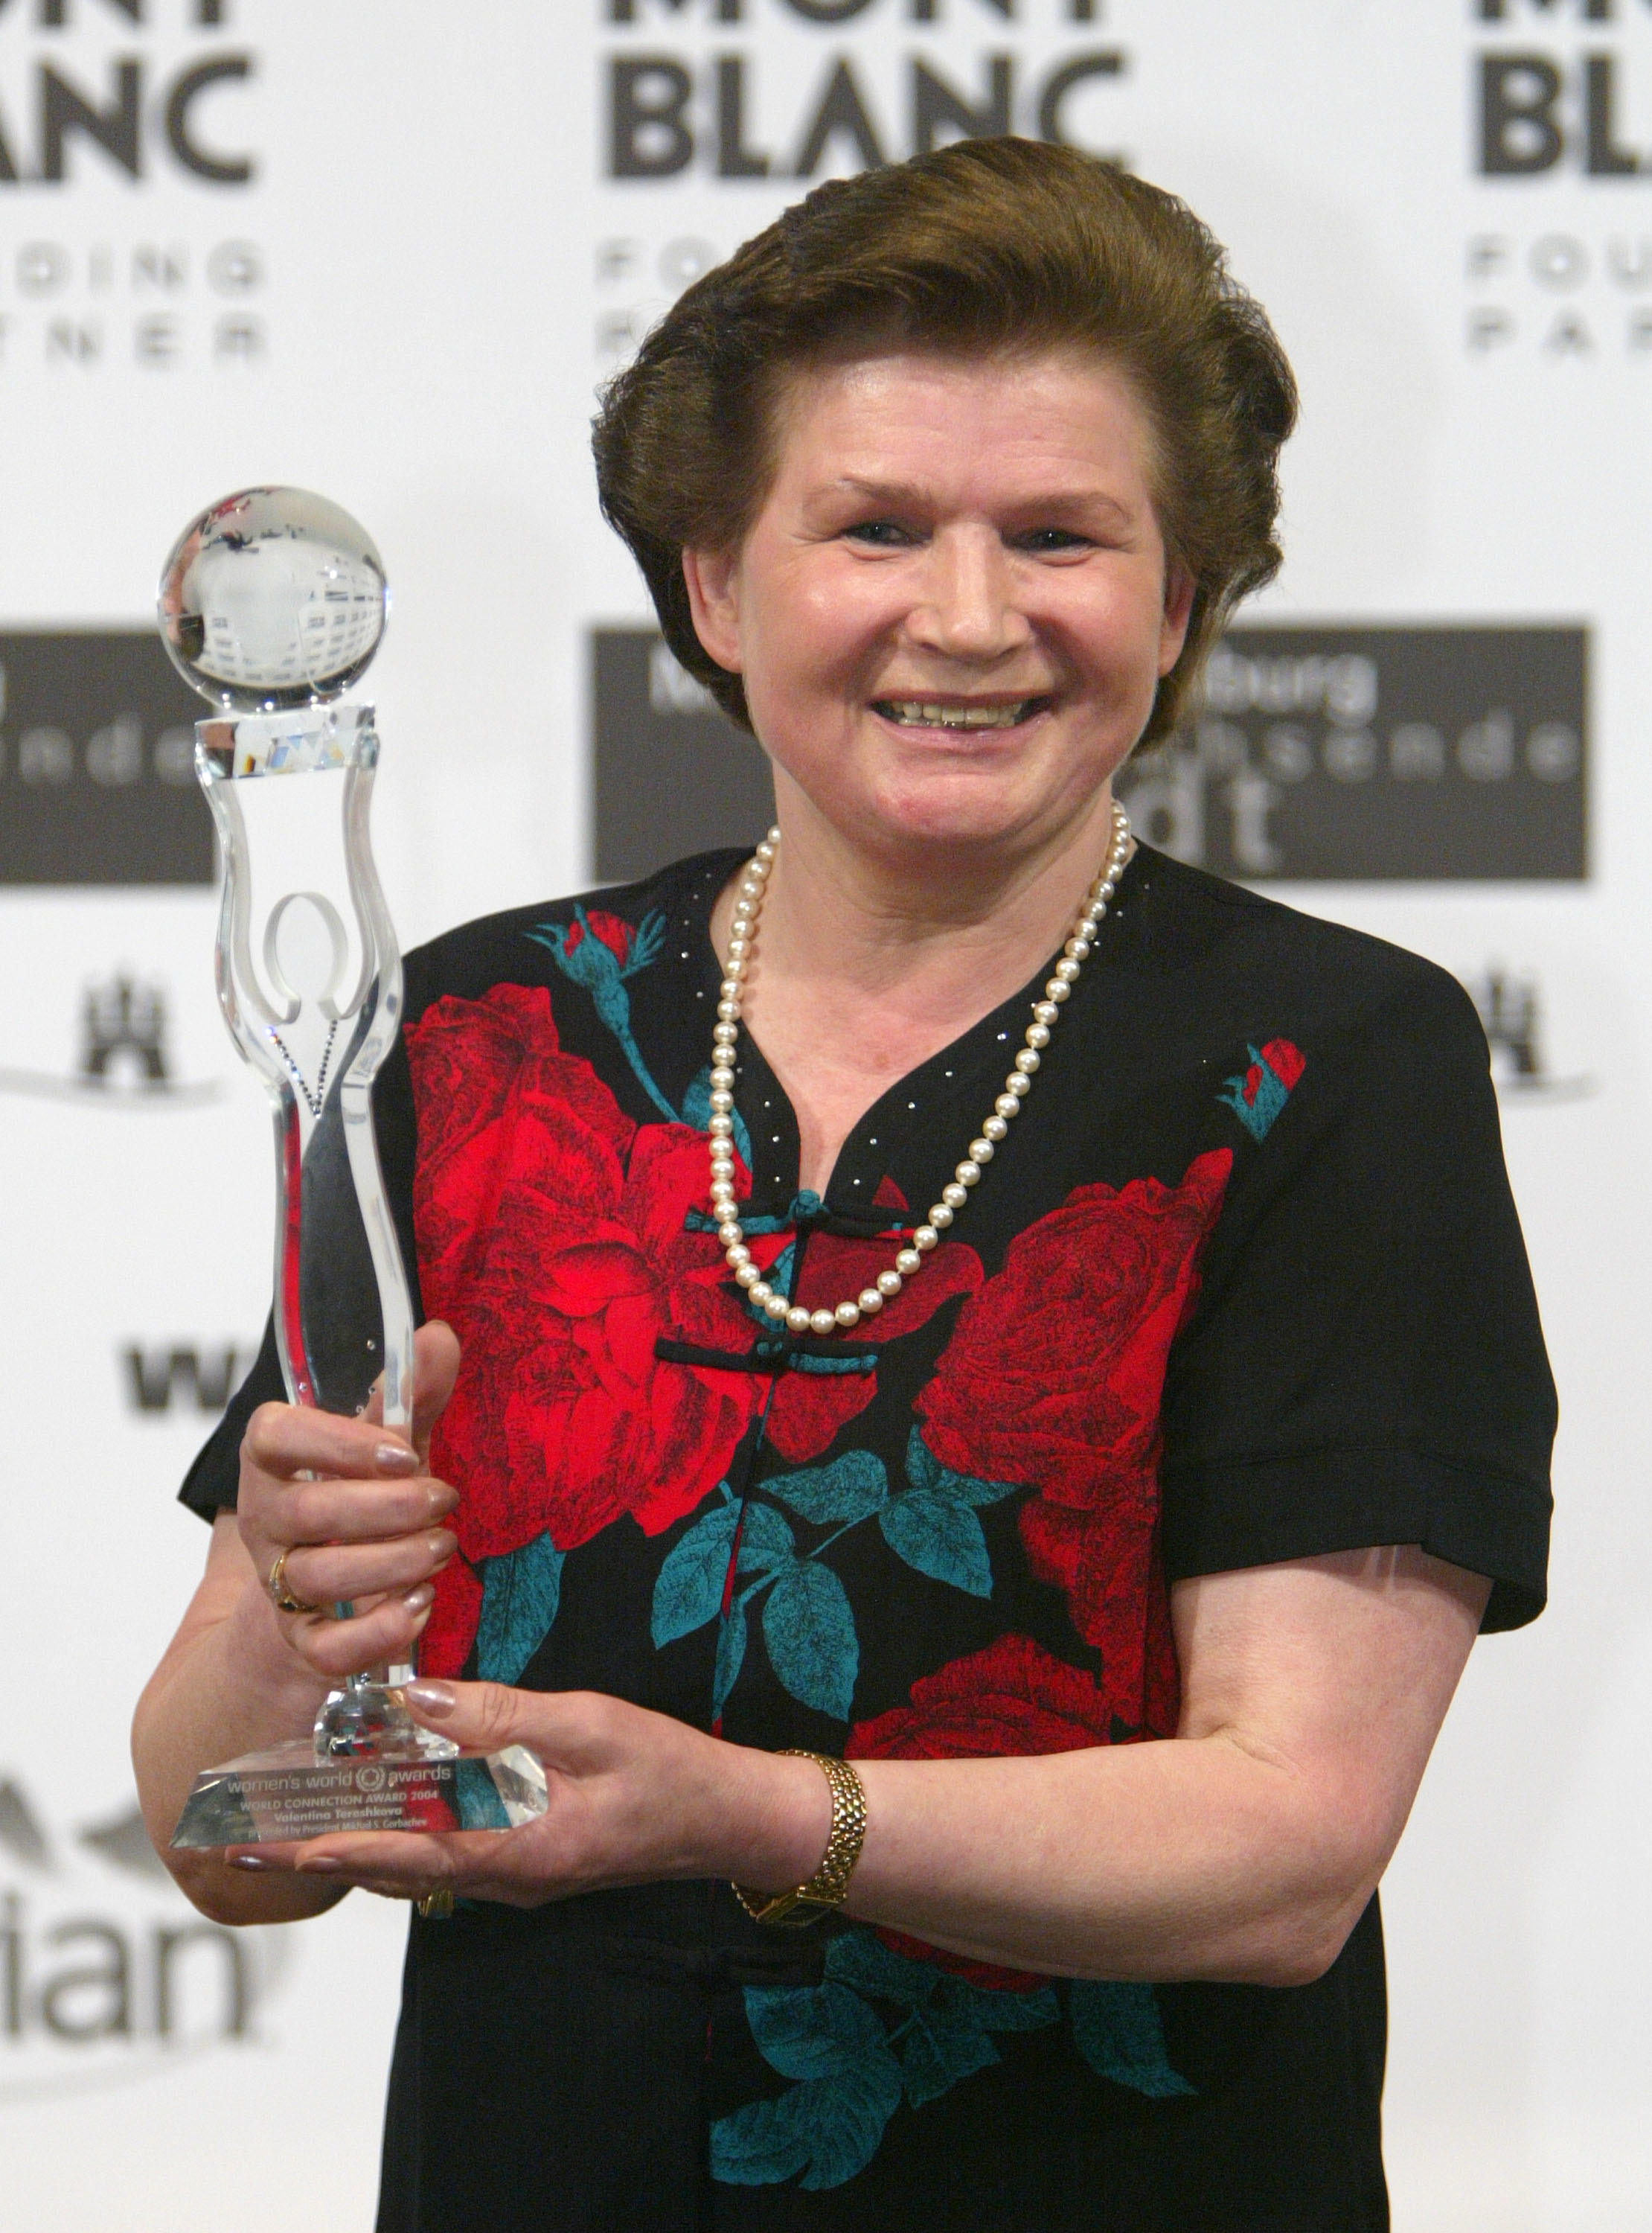 Valentina Tereshkova, the First Woman to Fly Into Space, Turns 80 | Inverse